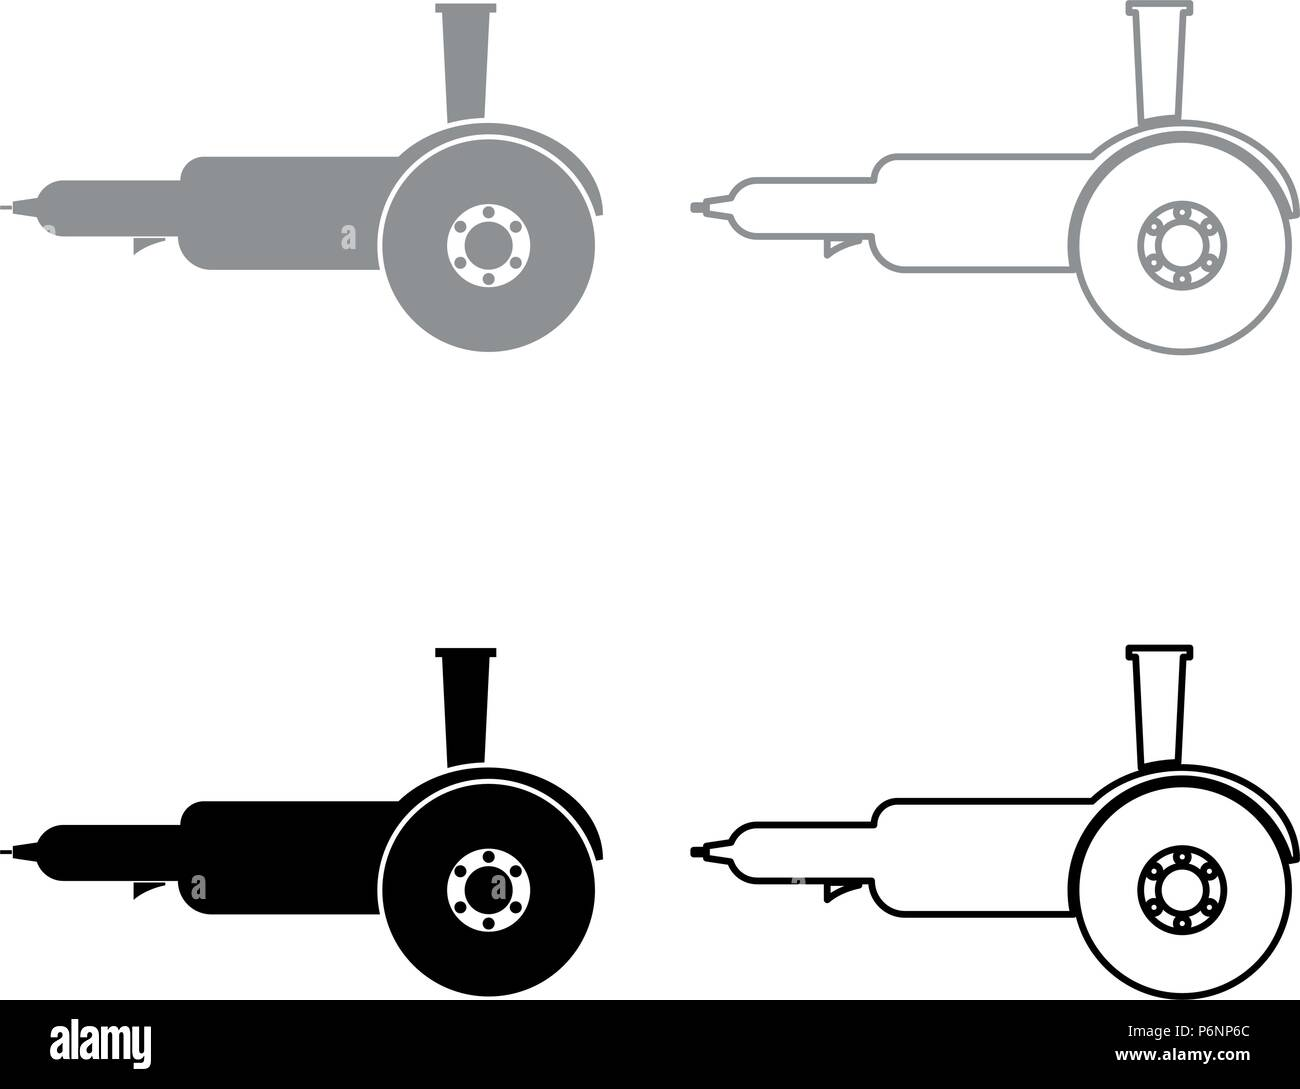 Bulgarian electric circular saw angle grinder with discs hand-held icon set grey black color I flat style simple image - Stock Vector